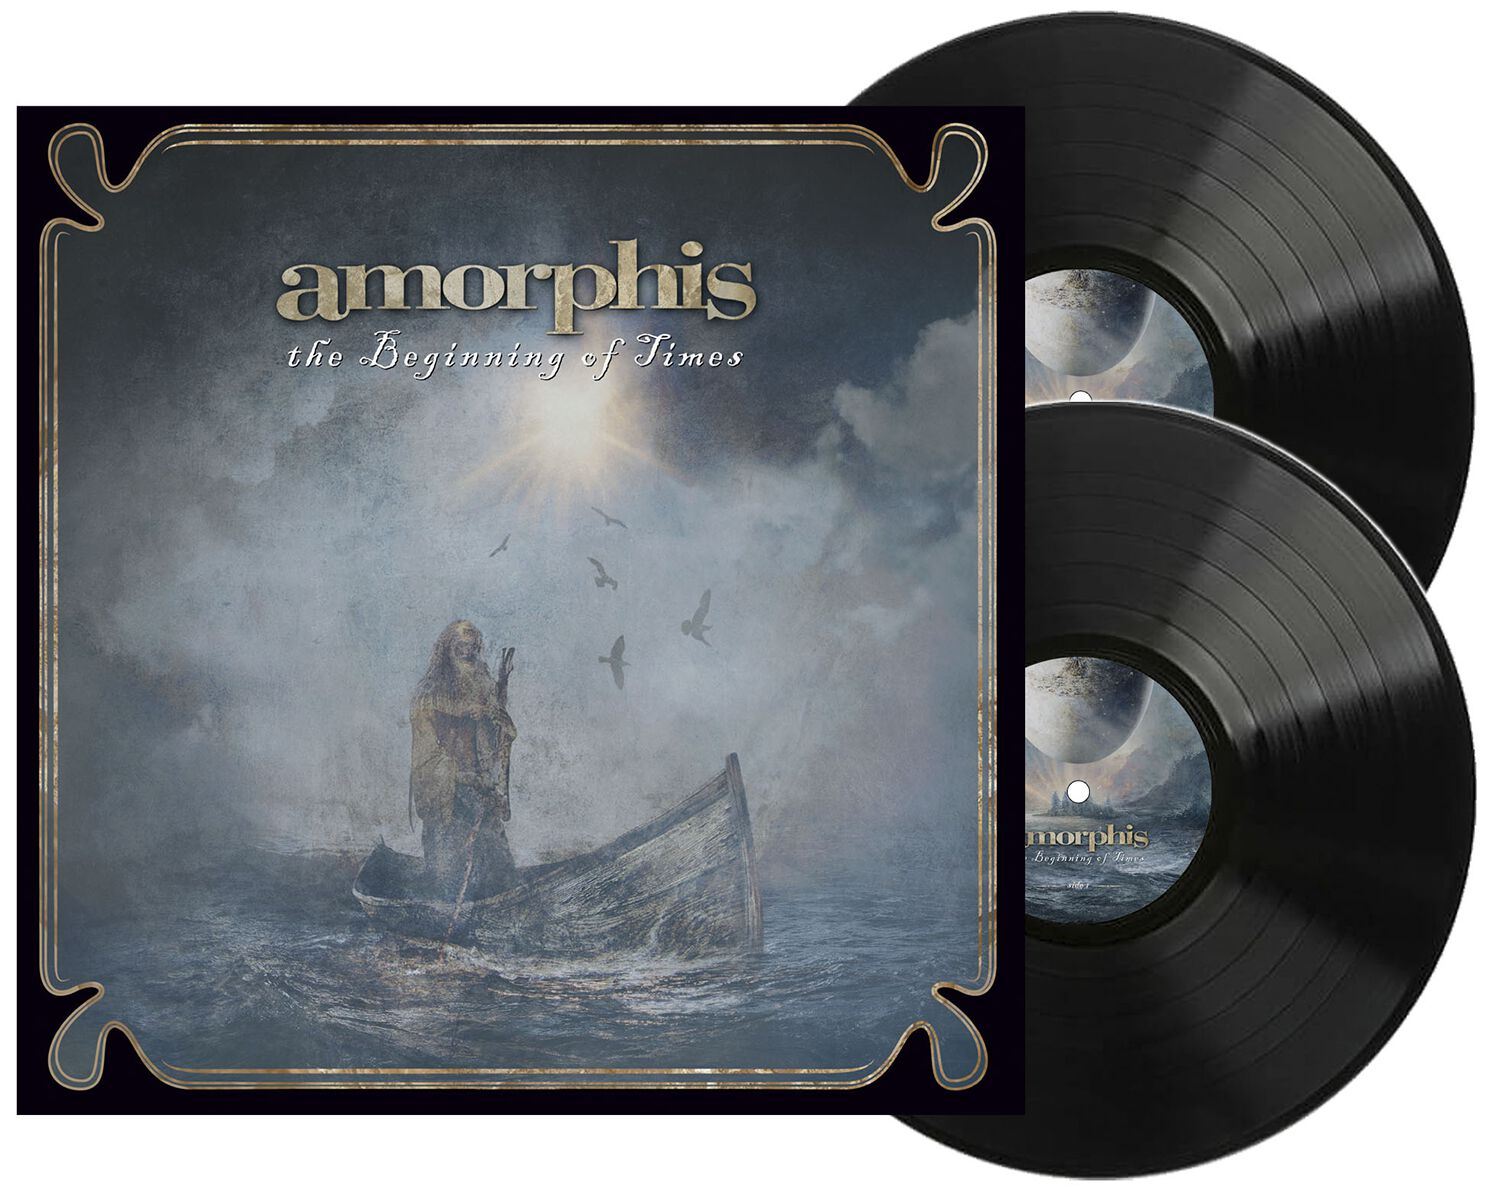 Image of Amorphis The beginning of times 2-LP schwarz